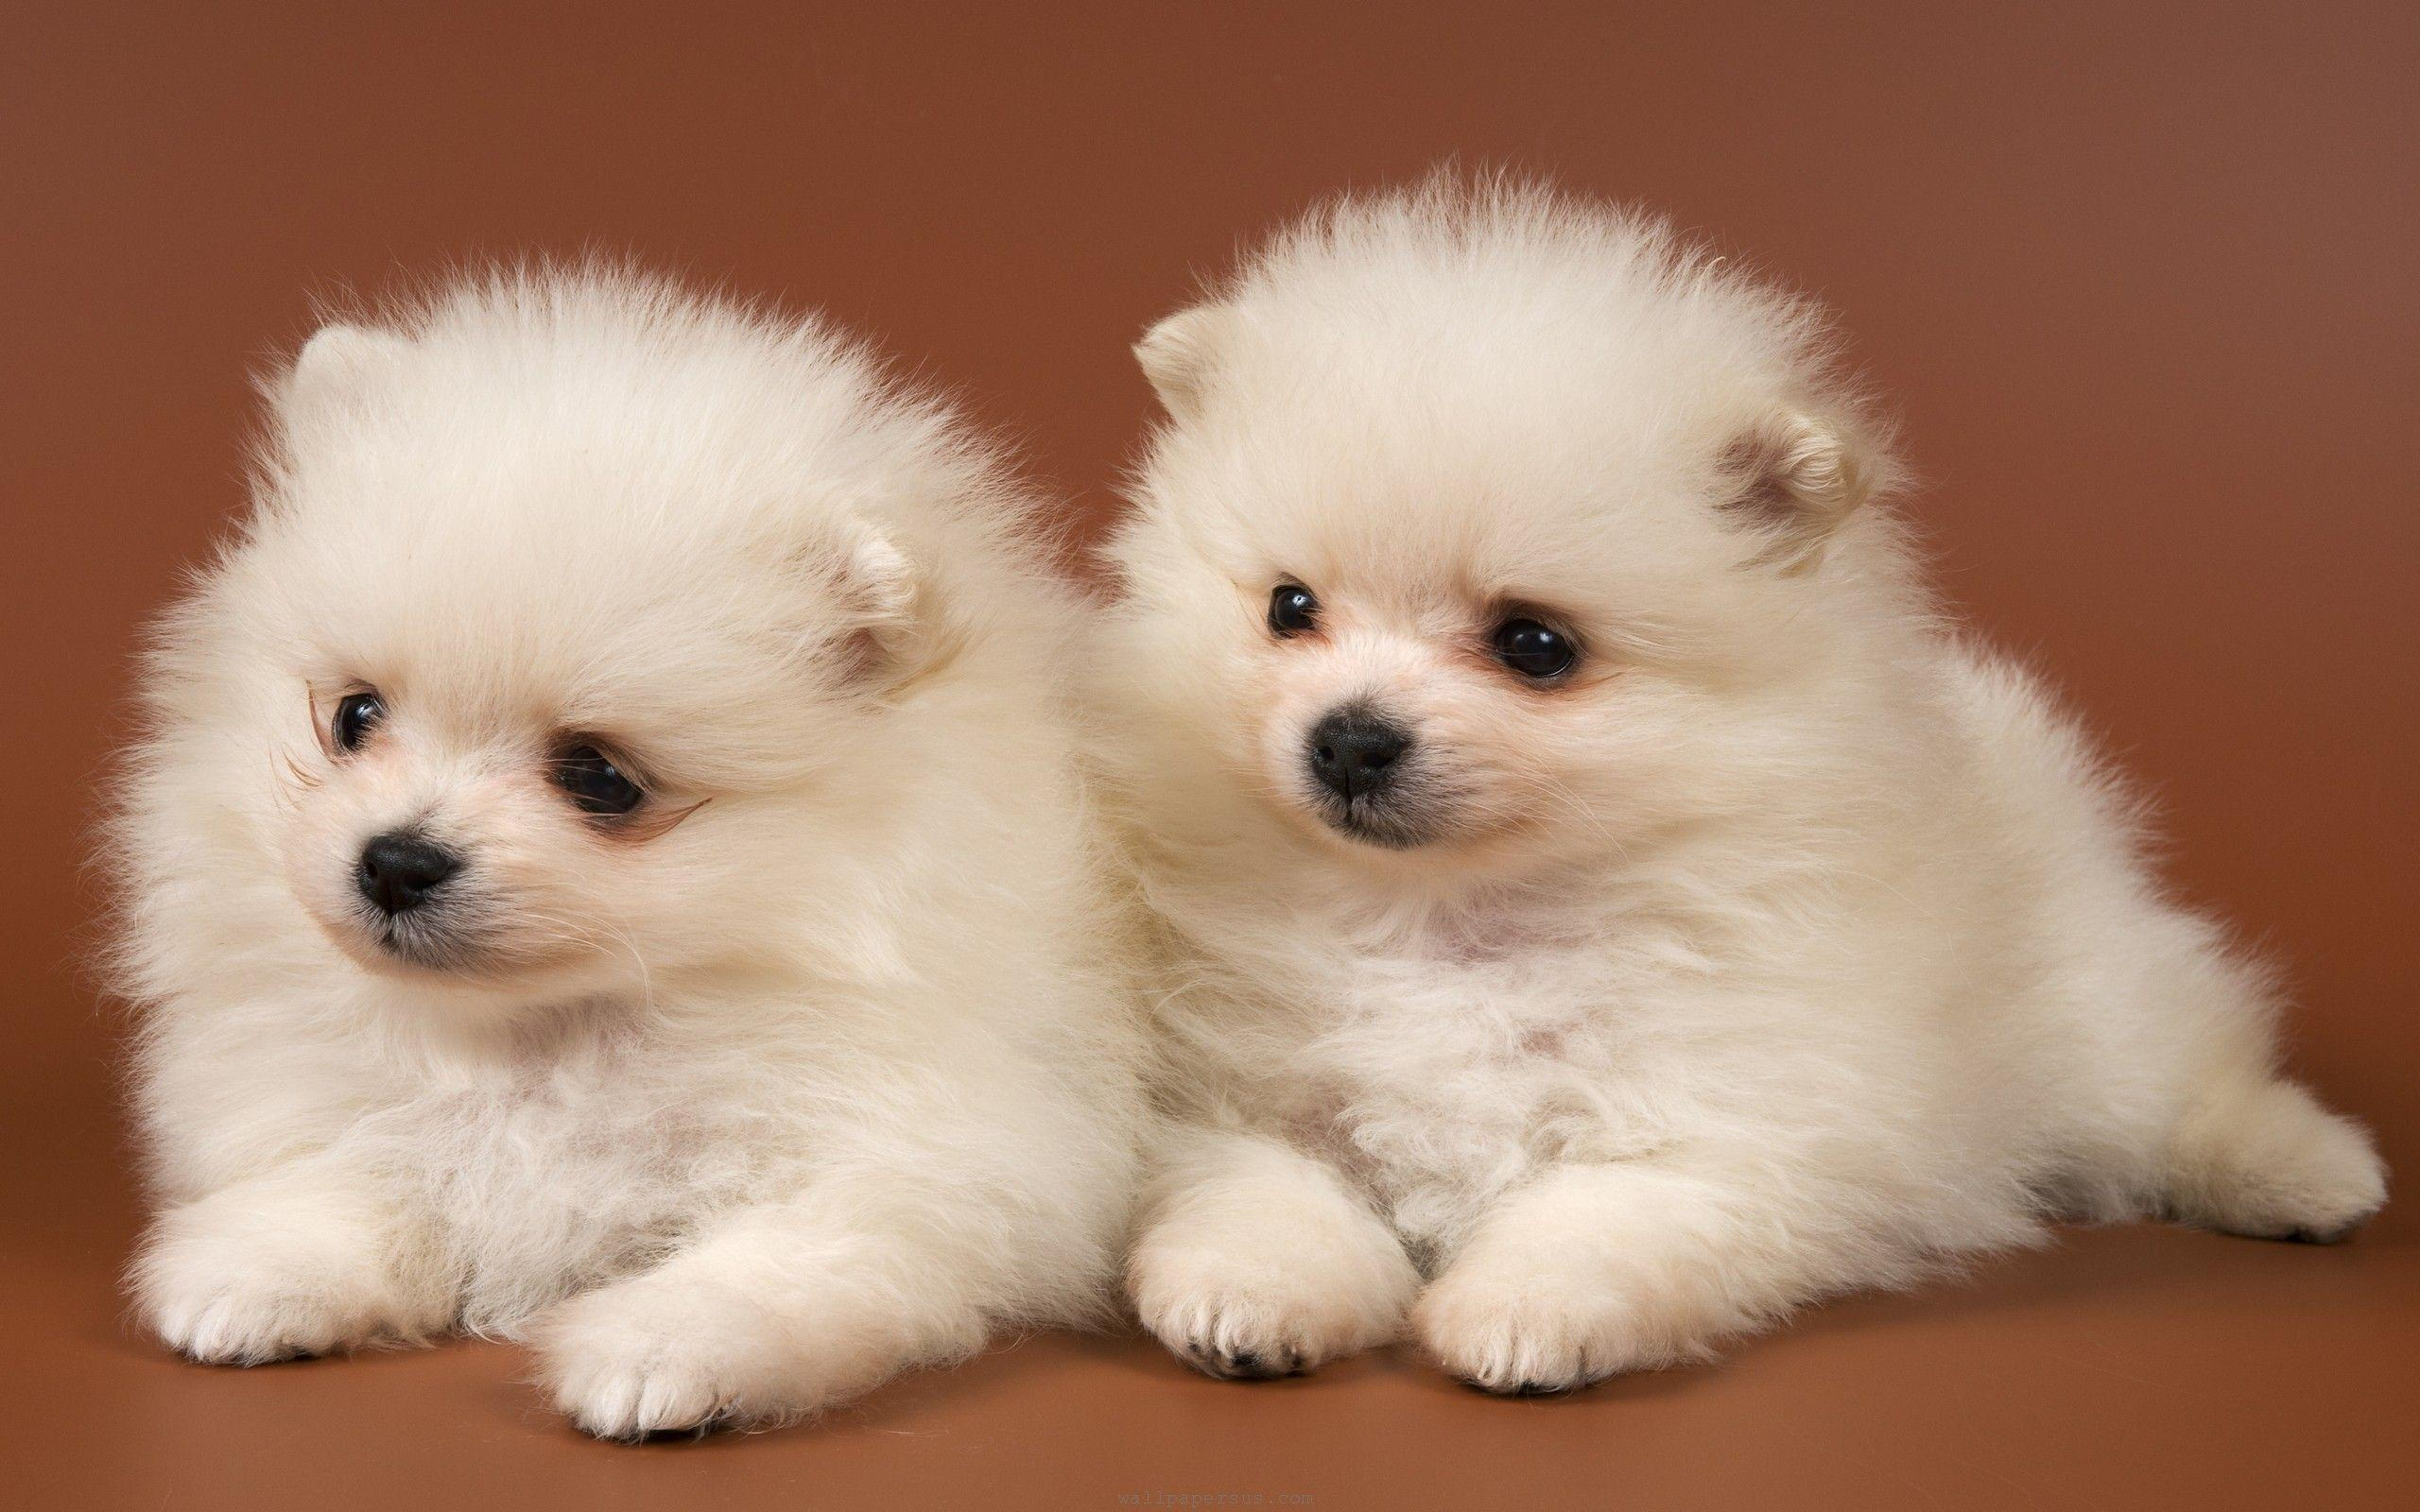 Cute Puppy Dogs Wallpapers Image & Pictures